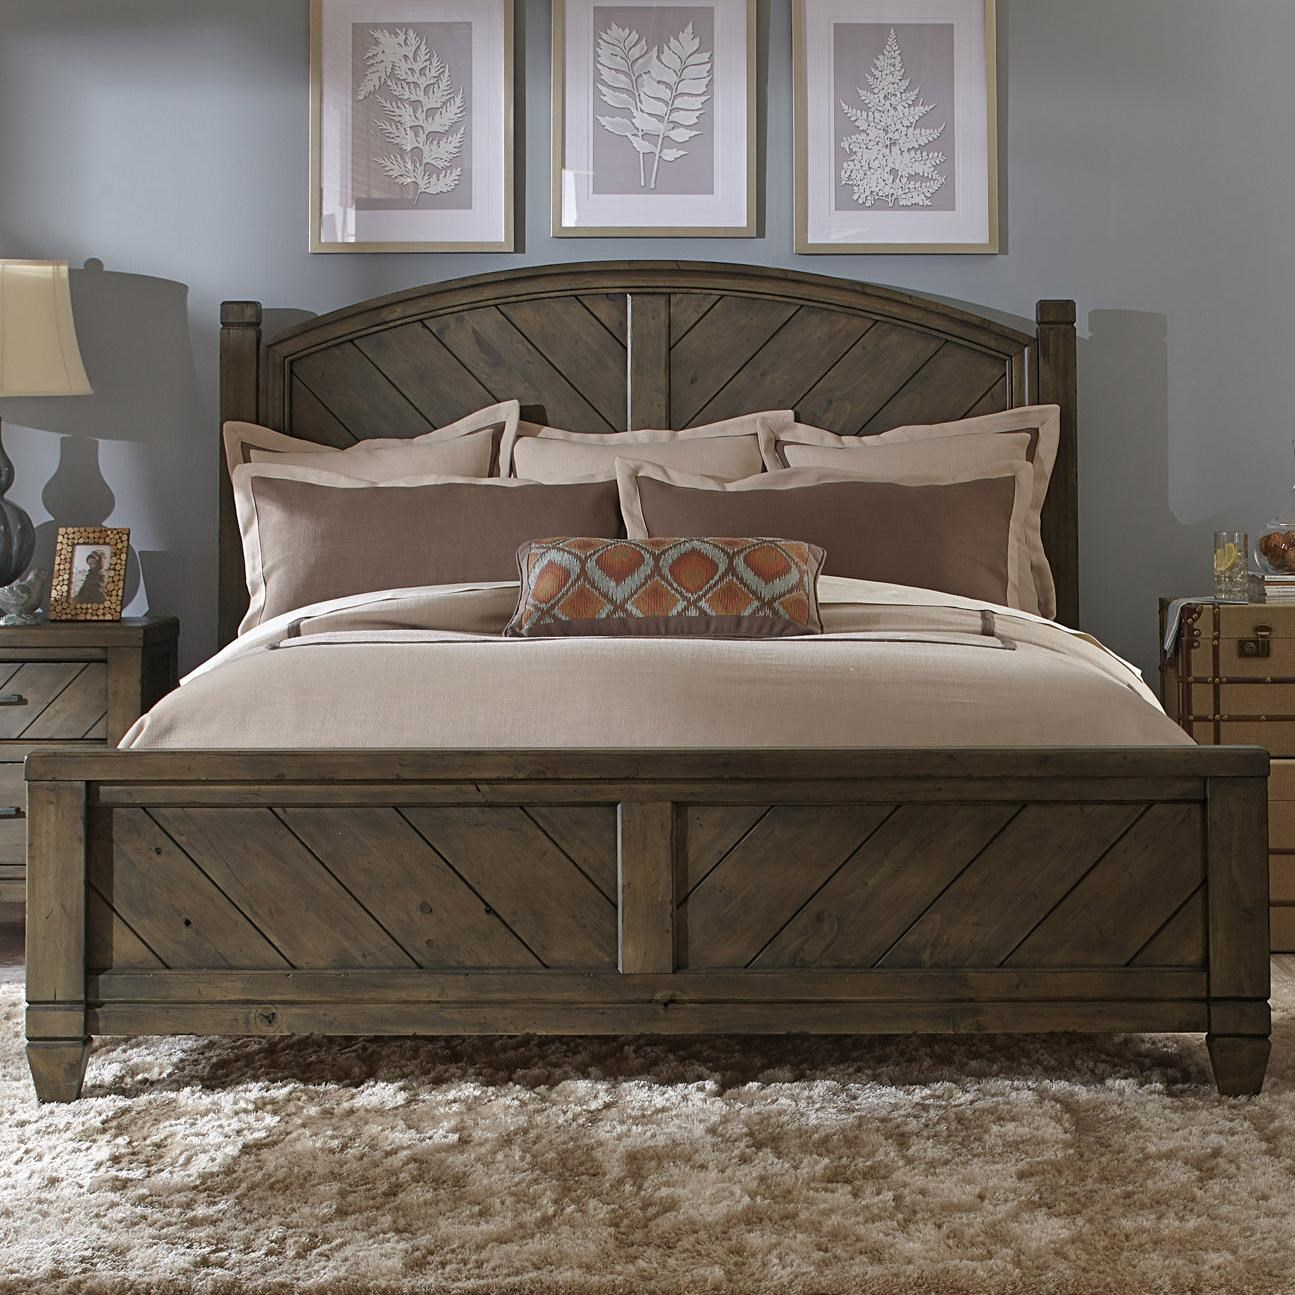 modern country furniture. simple furniture furniture modern country king poster bed bed shown may not represent  exact size indicated with r